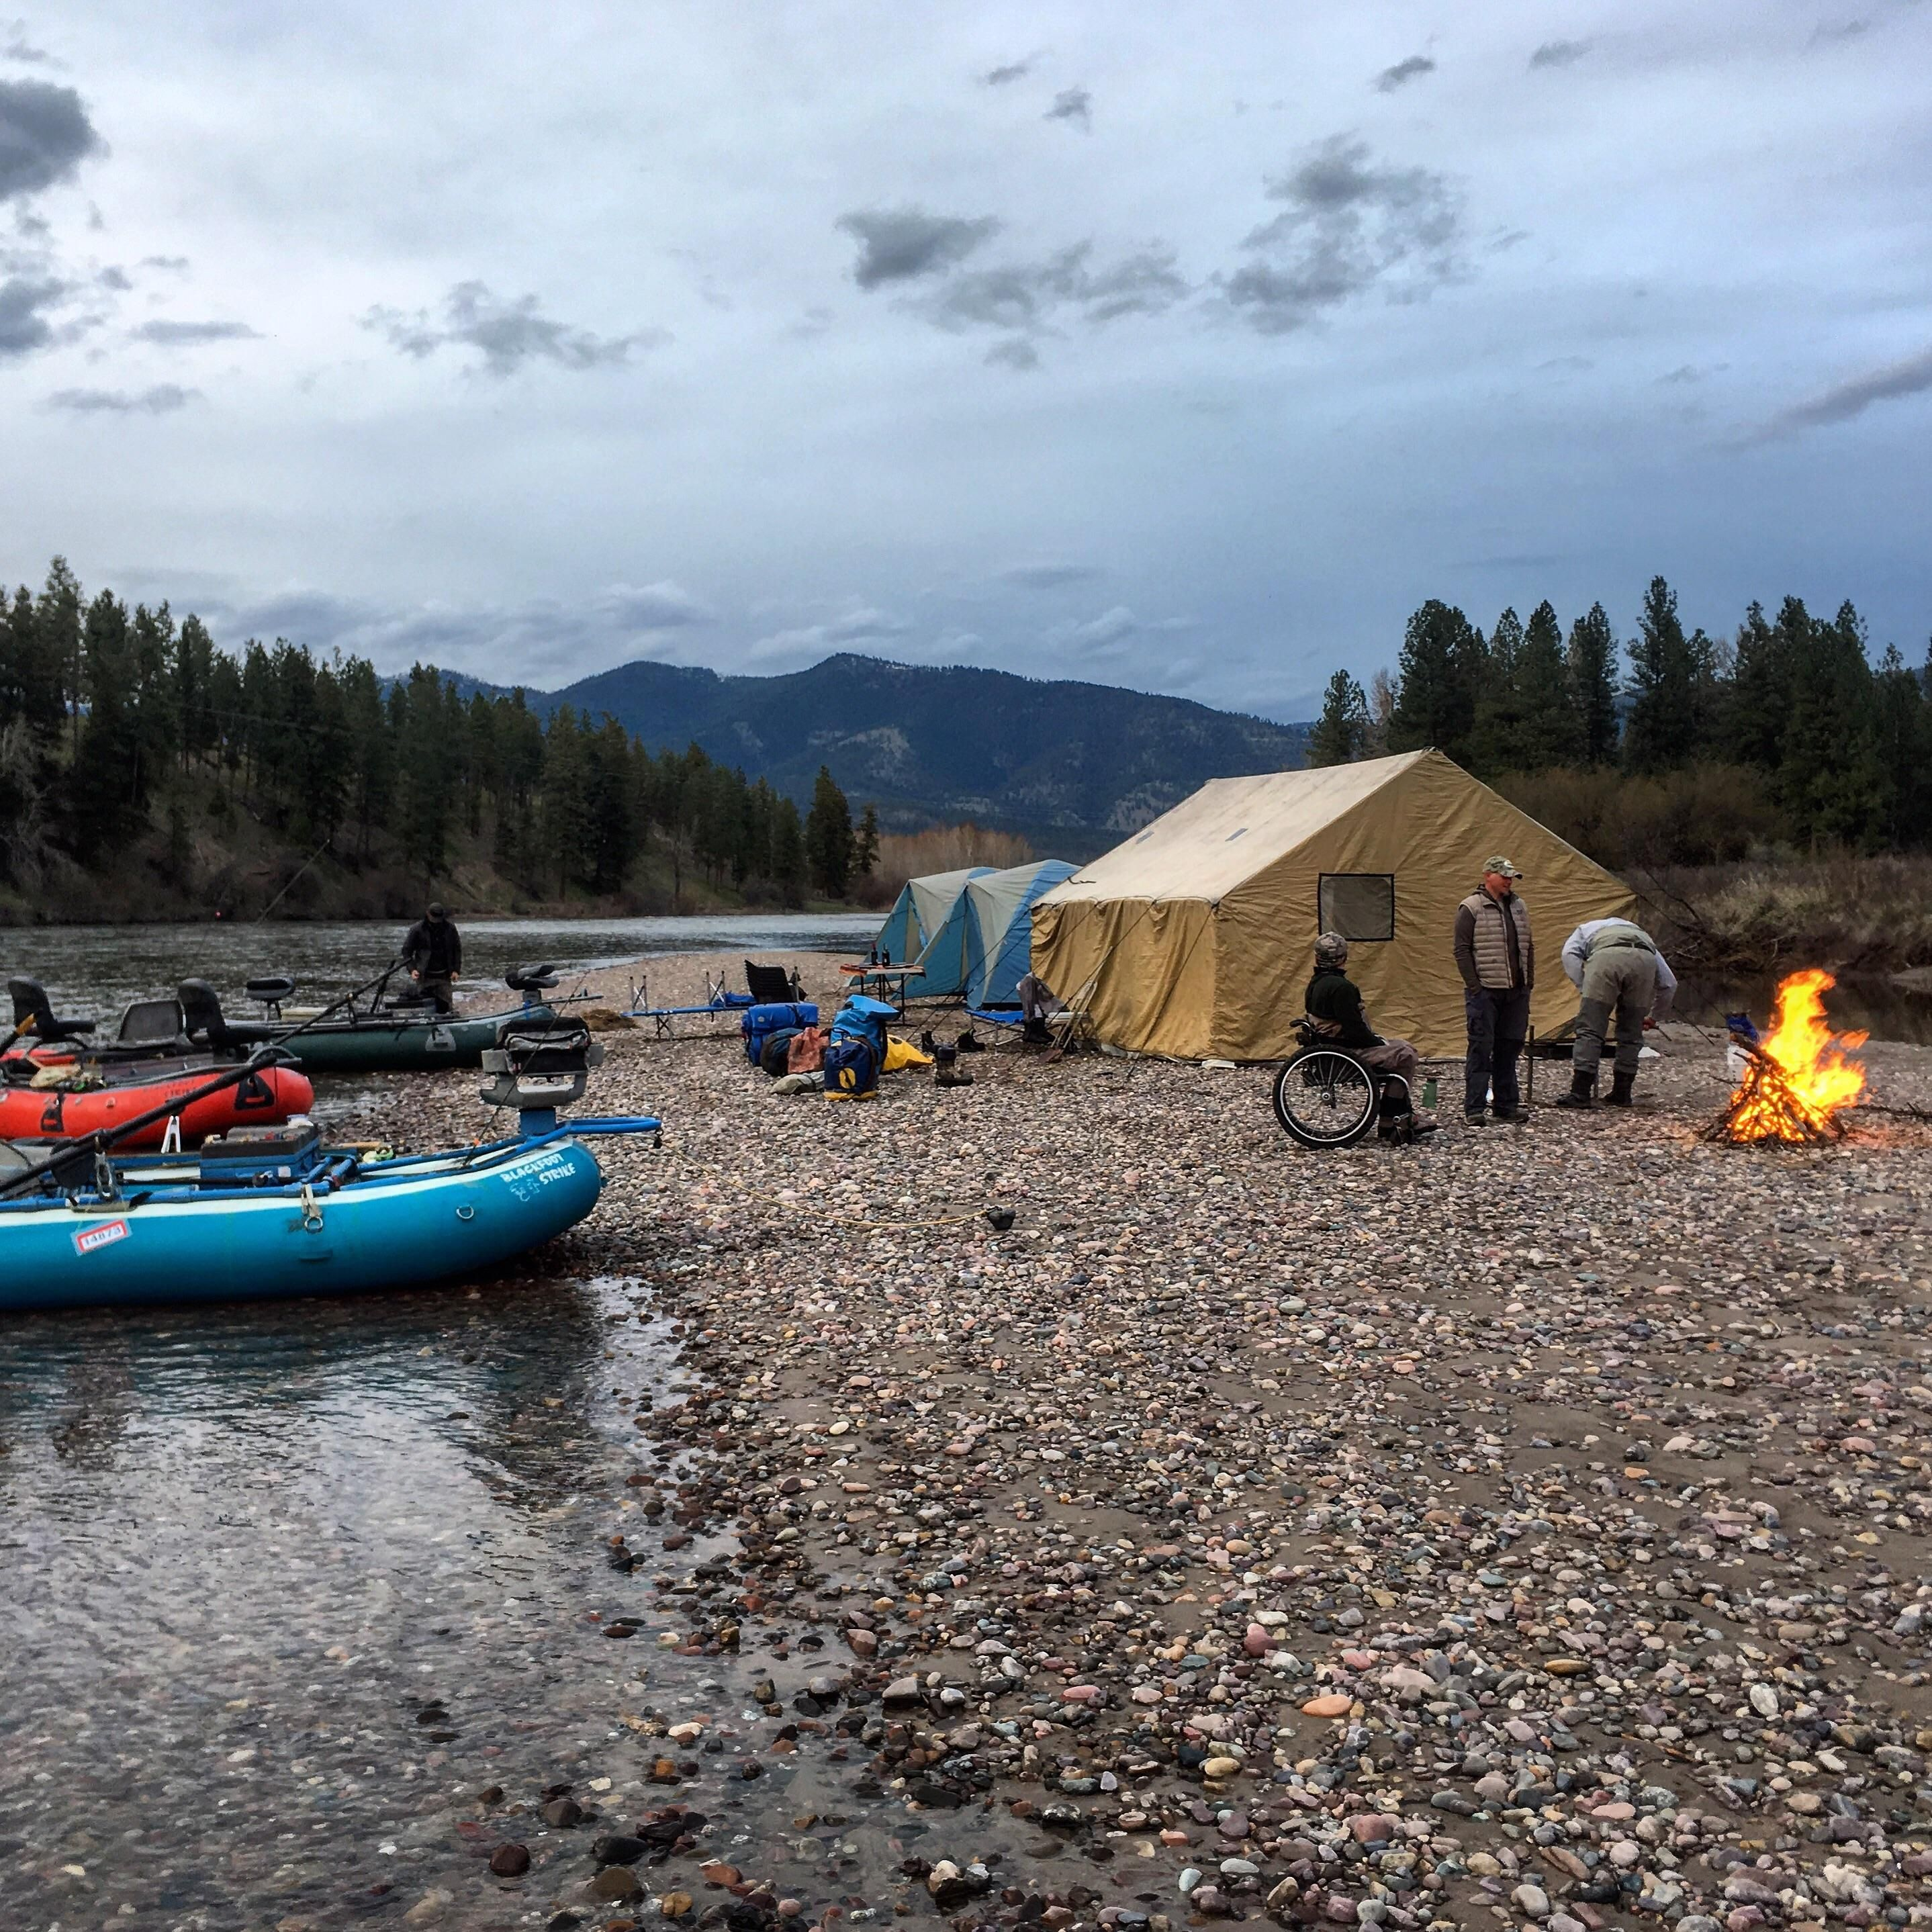 Had a fantastic Montana overnight fly fishing/camping trip ...